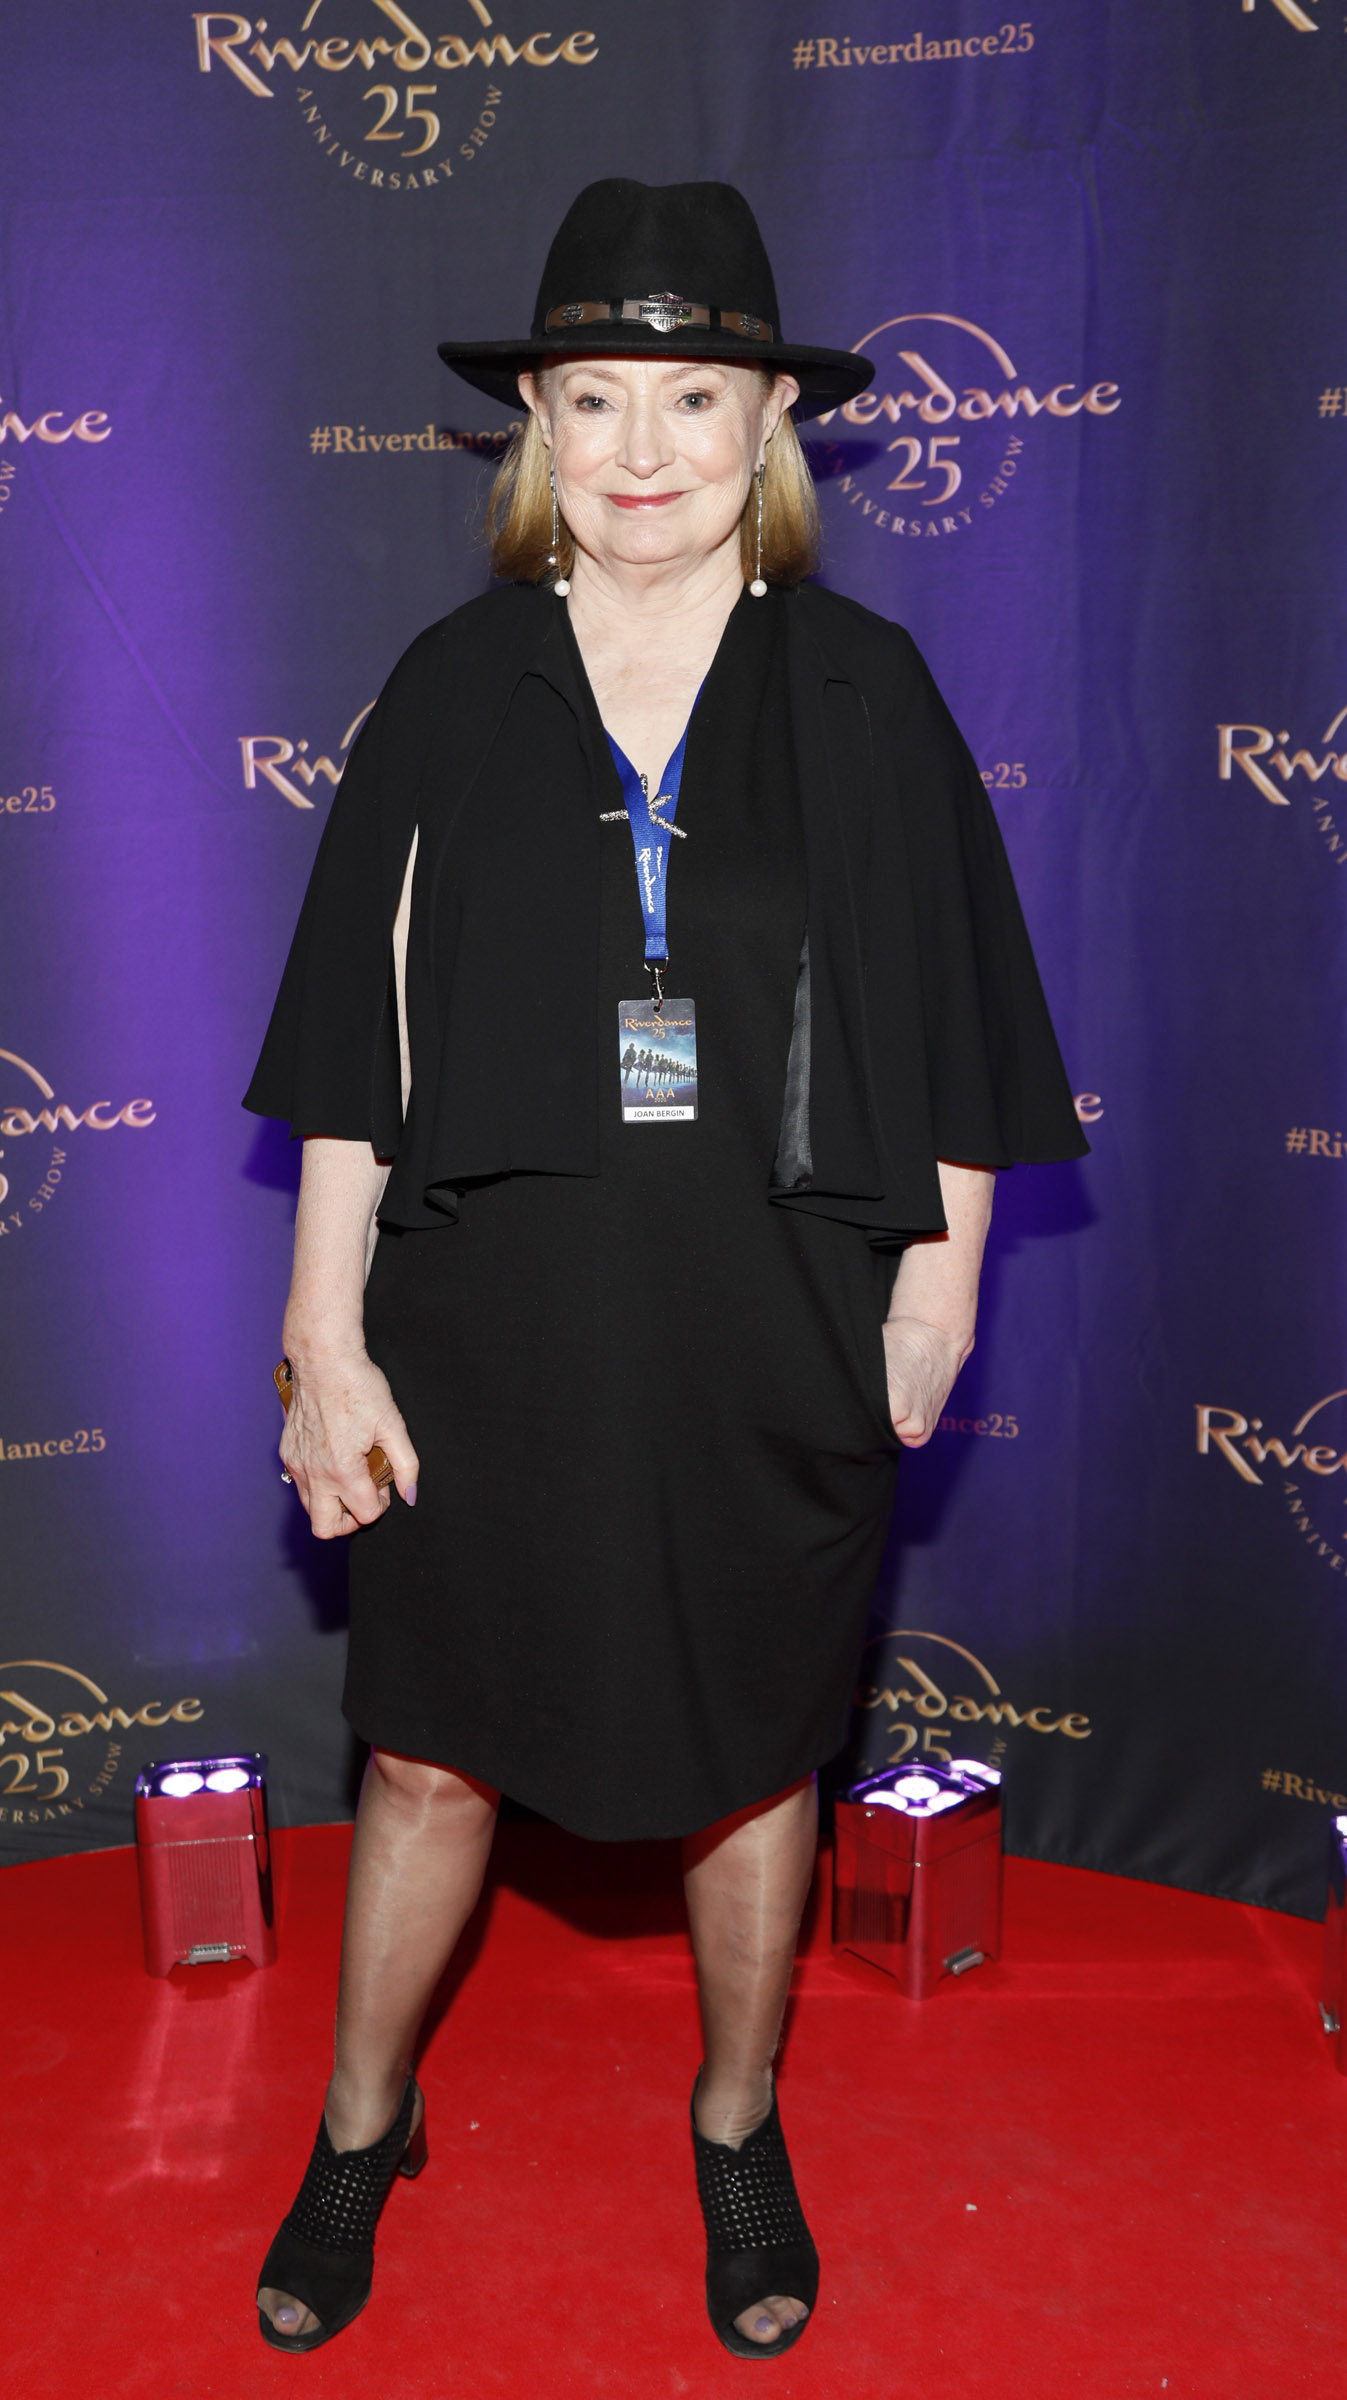 Joan Bergin at the historic gala performance of Riverdance 25th Anniversary show at 3Arena Dublin exactly 25 years to the day that Riverdance was first performed at the Point Depot.  Photo: Kieran Harnett